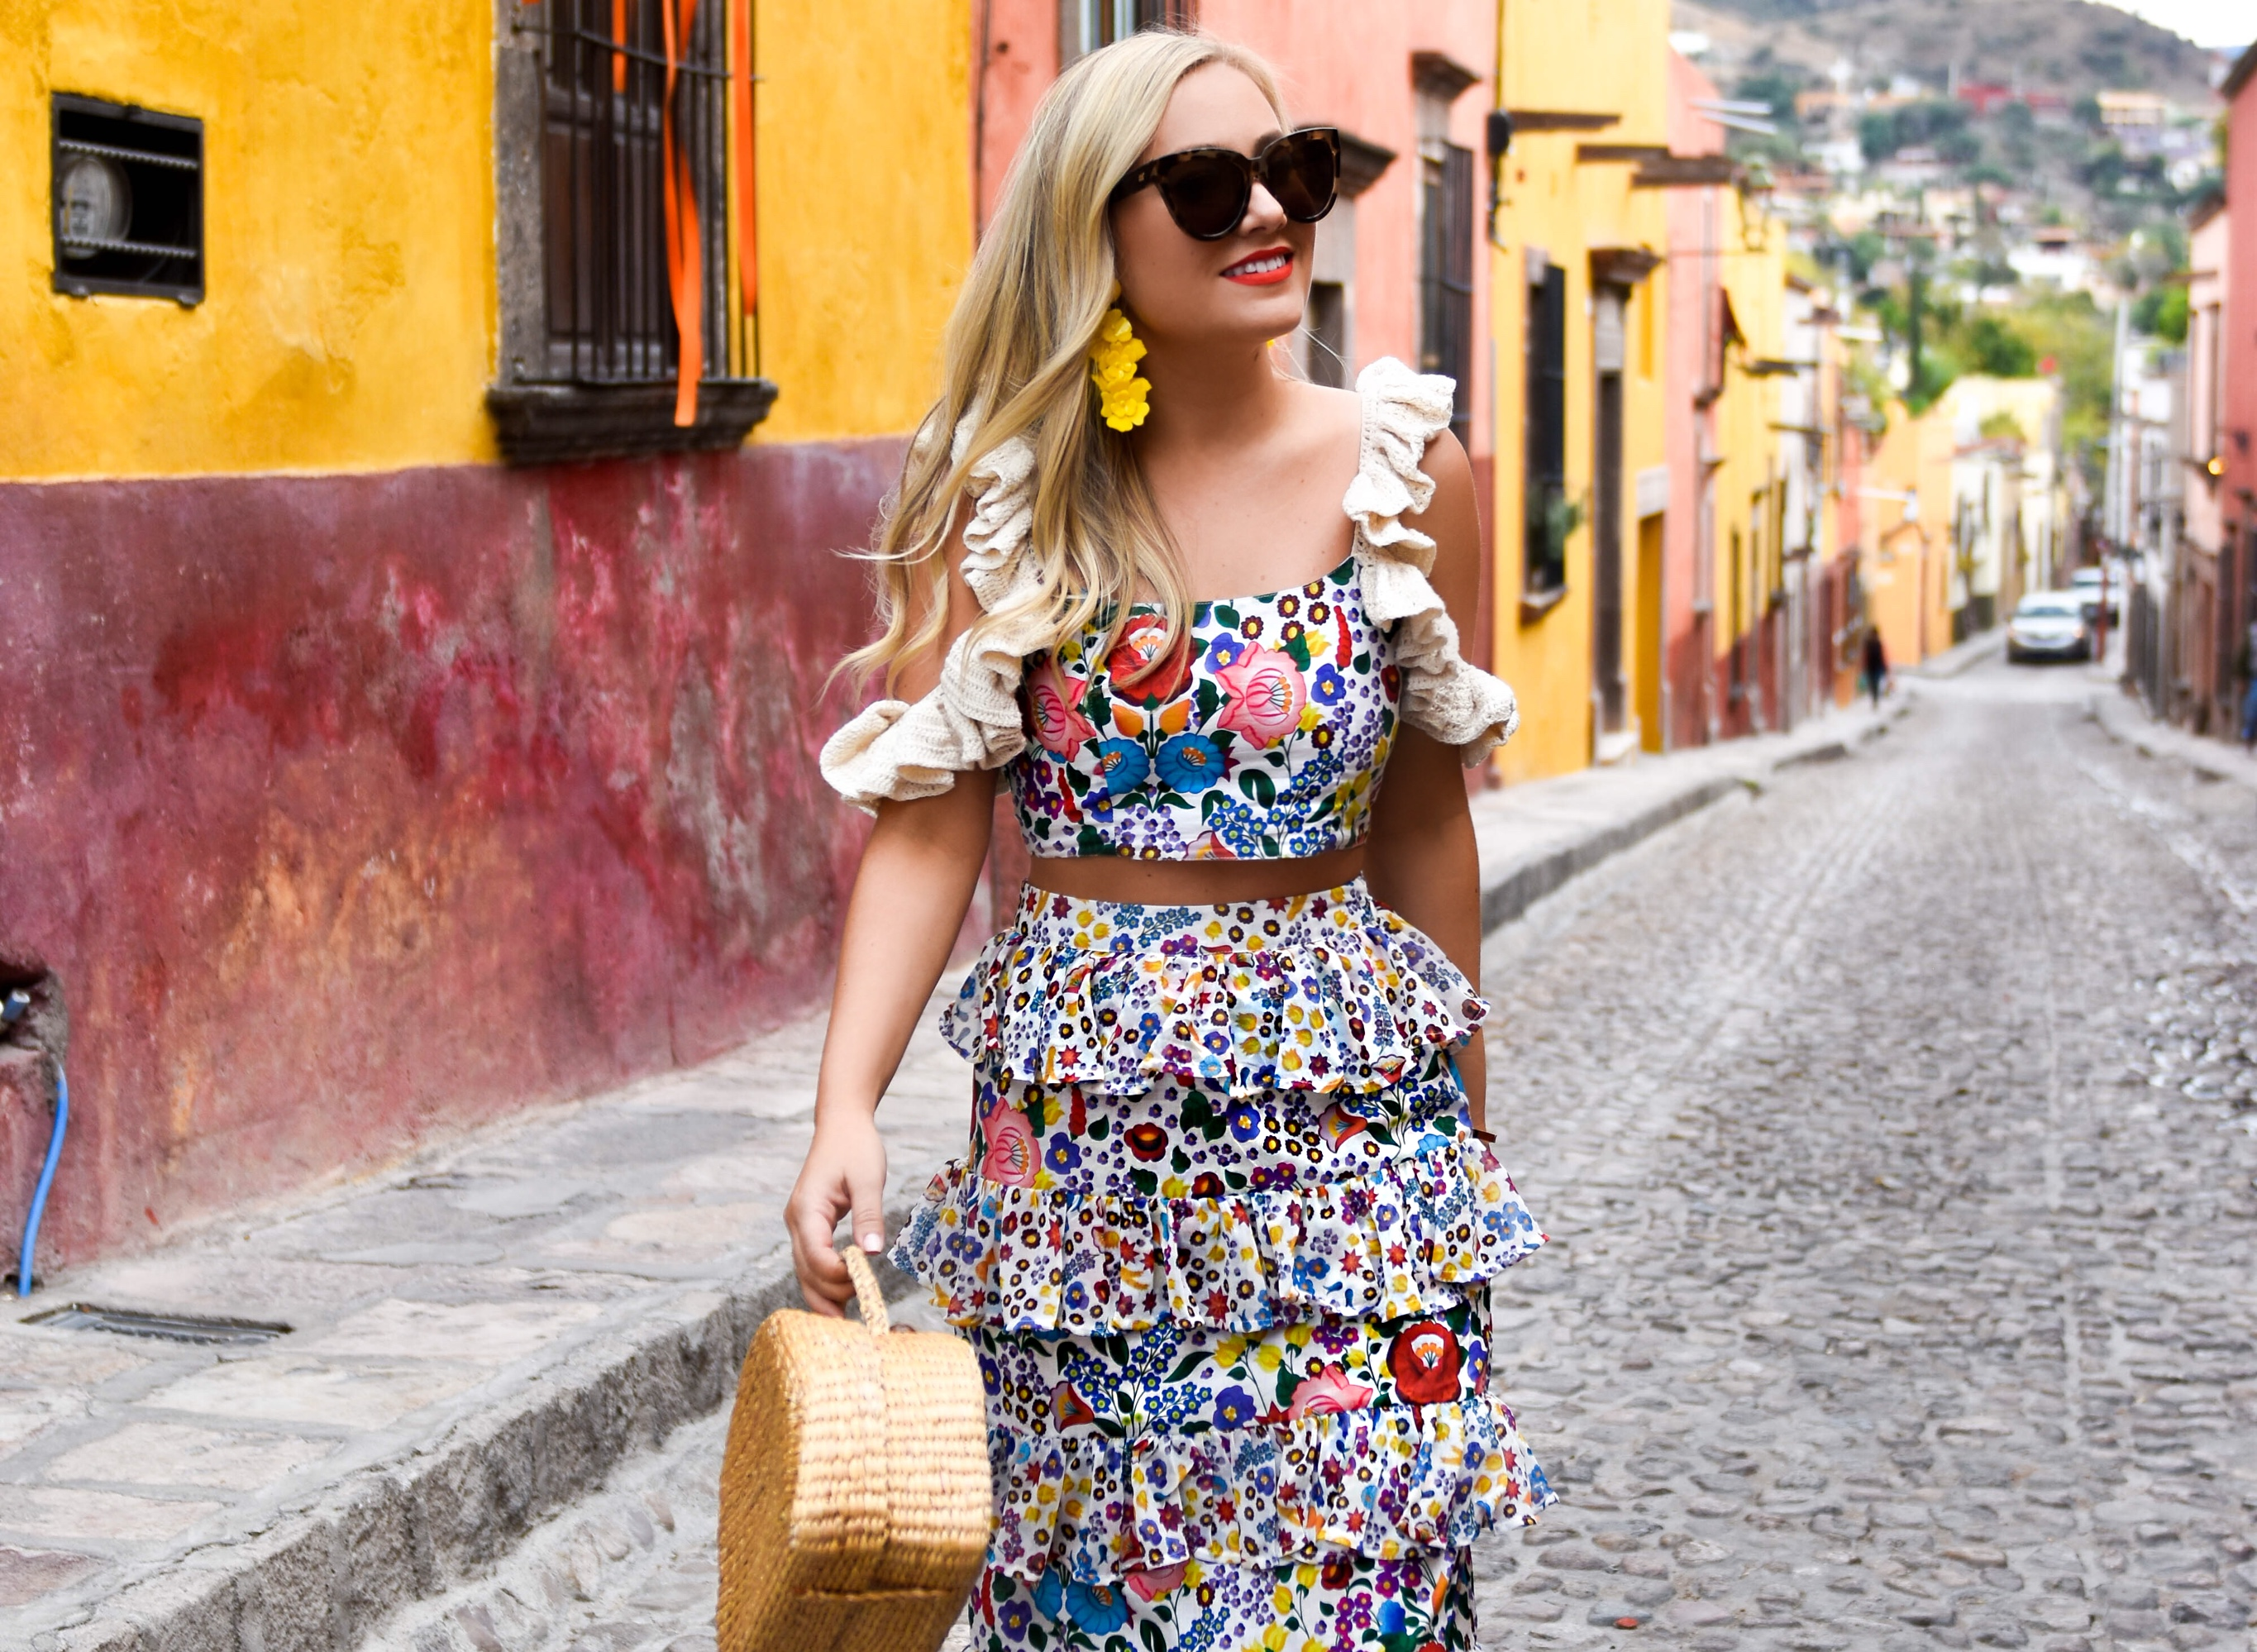 All Things Mochi, Matching Set, Colorful Dress, Mexico, Travel Blogger, Oscar de la Renta Earrings, Le Specs Sunglasses, Printed Dress, Travel Blogger, fashion blogger, Lo Murphy, San Miguel de Allende, All Things Mochi Petra tiered printed cotton-voile maxi skirt, All things Mochi Agotha cropped crochet-trimmed printed cotton top